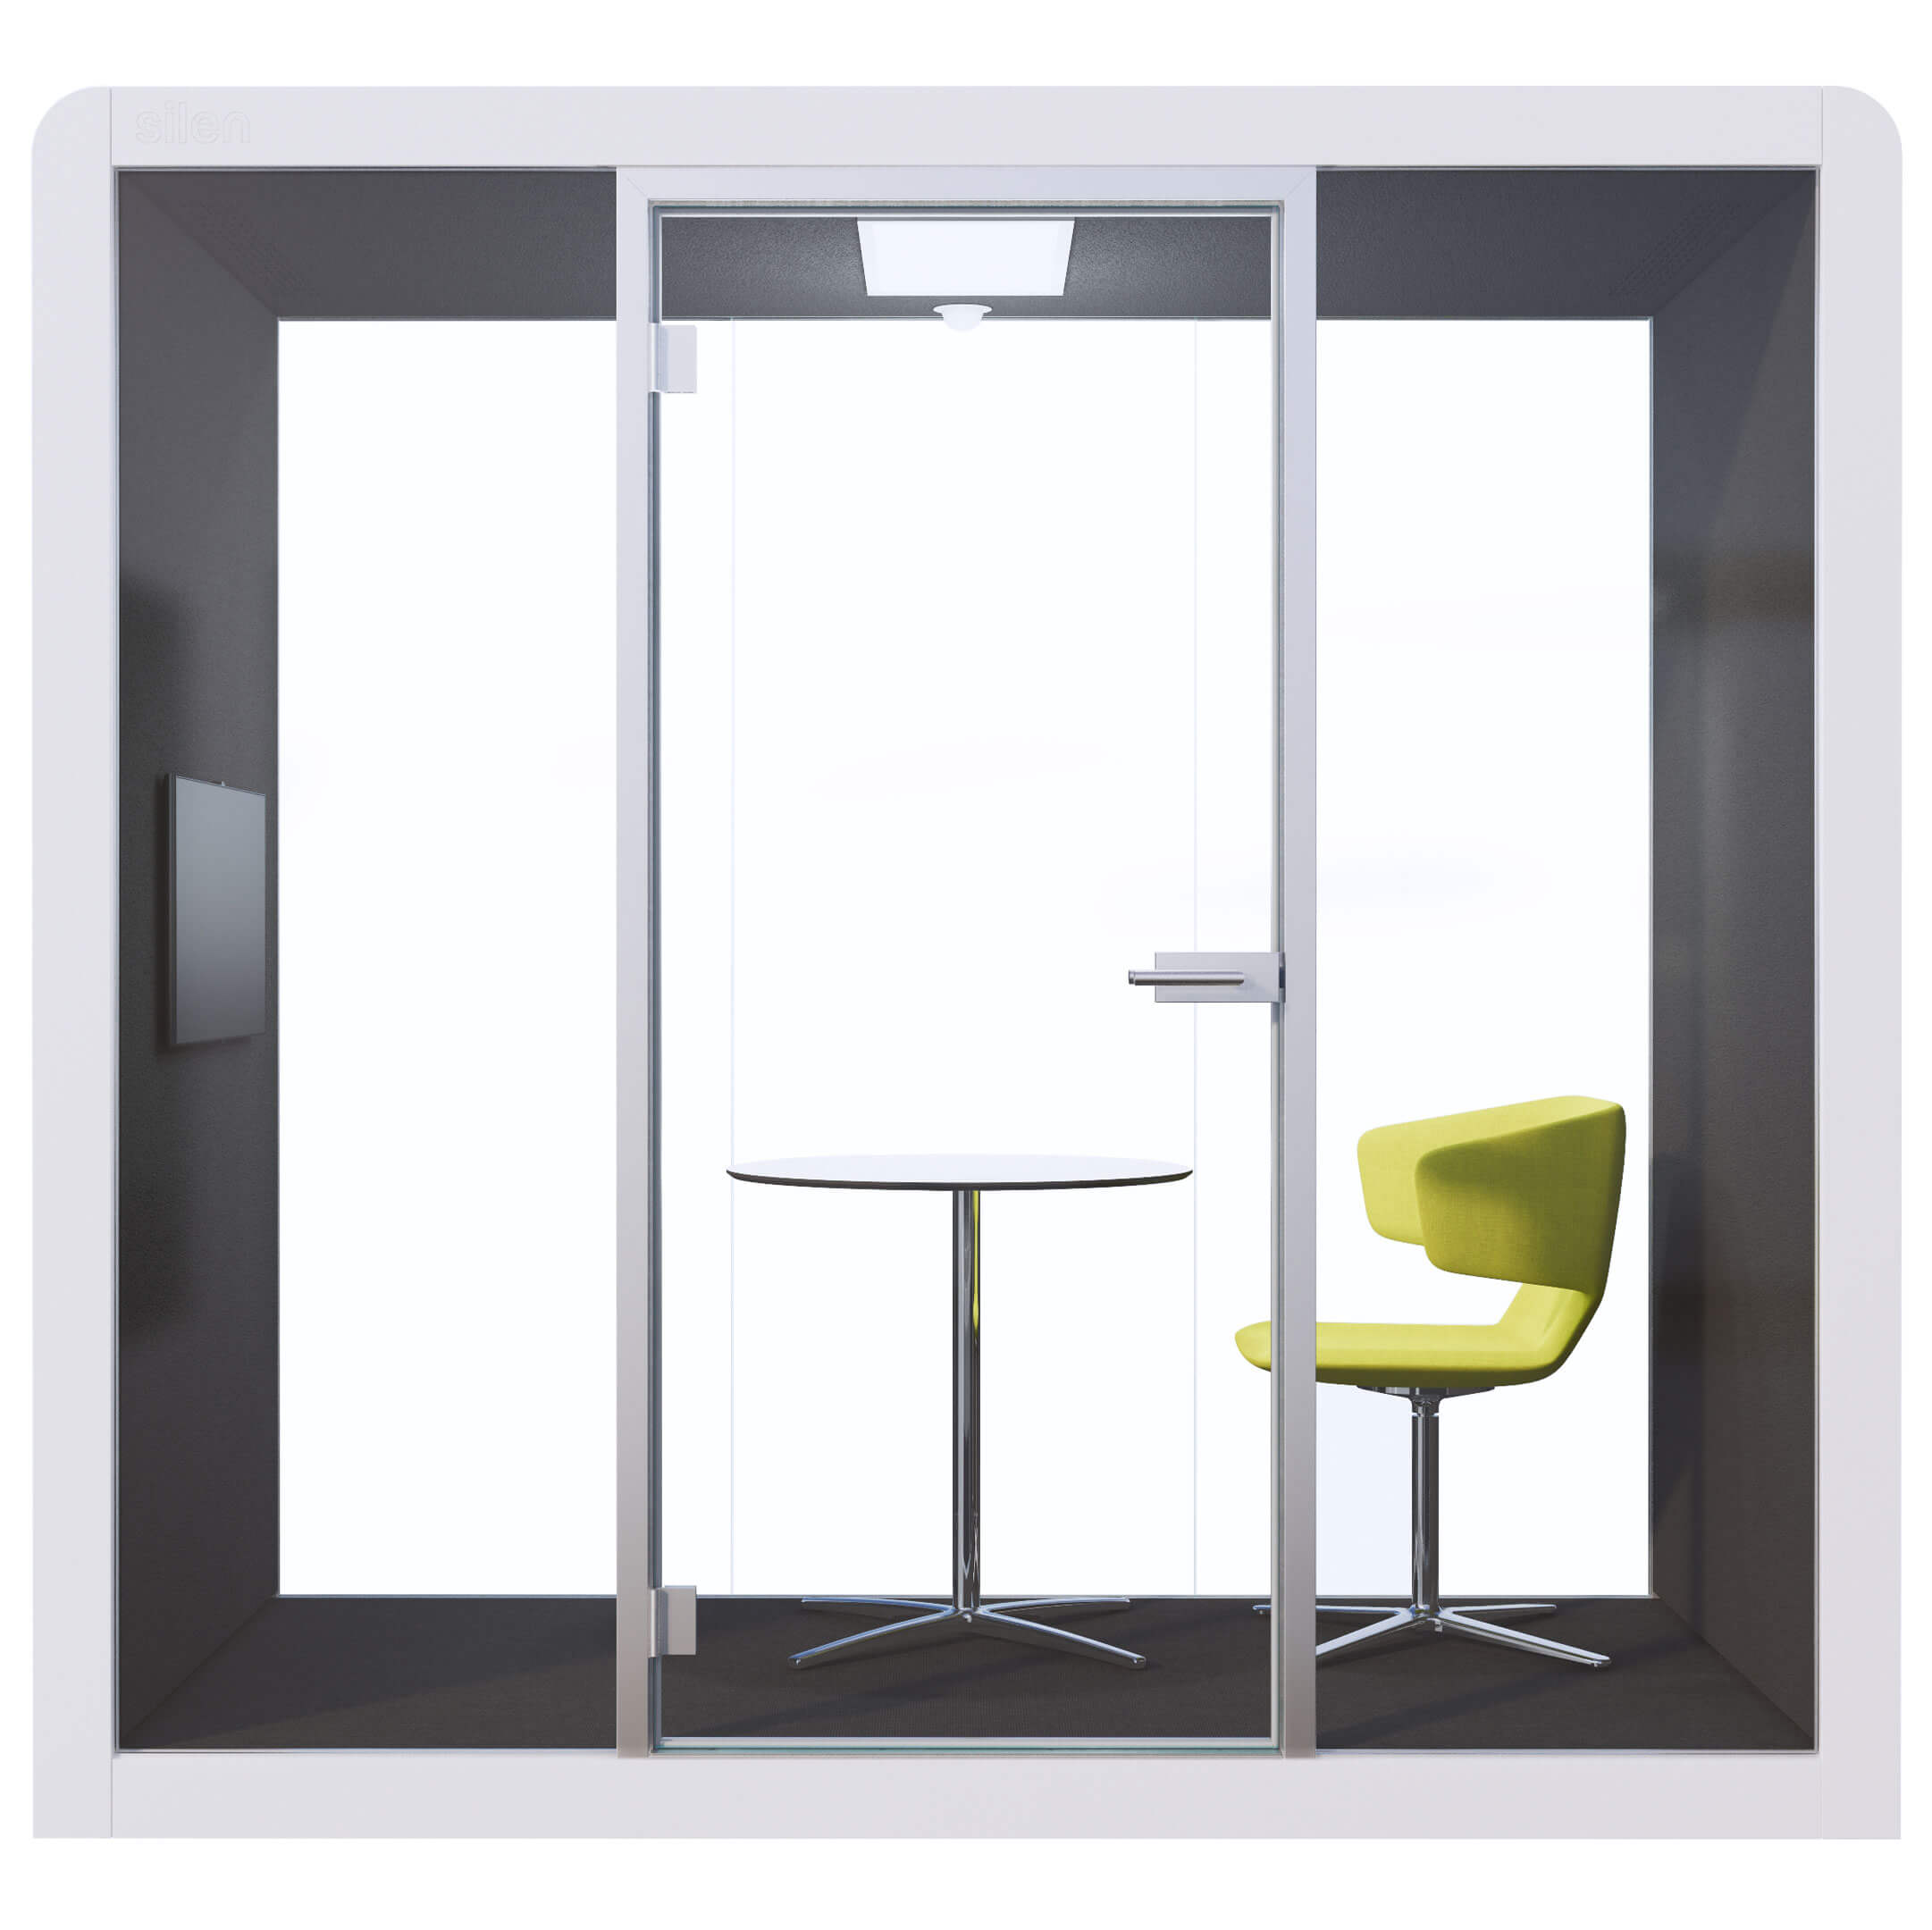 WHITE SPACE 2-VIDEO CONFERENCING ROOM